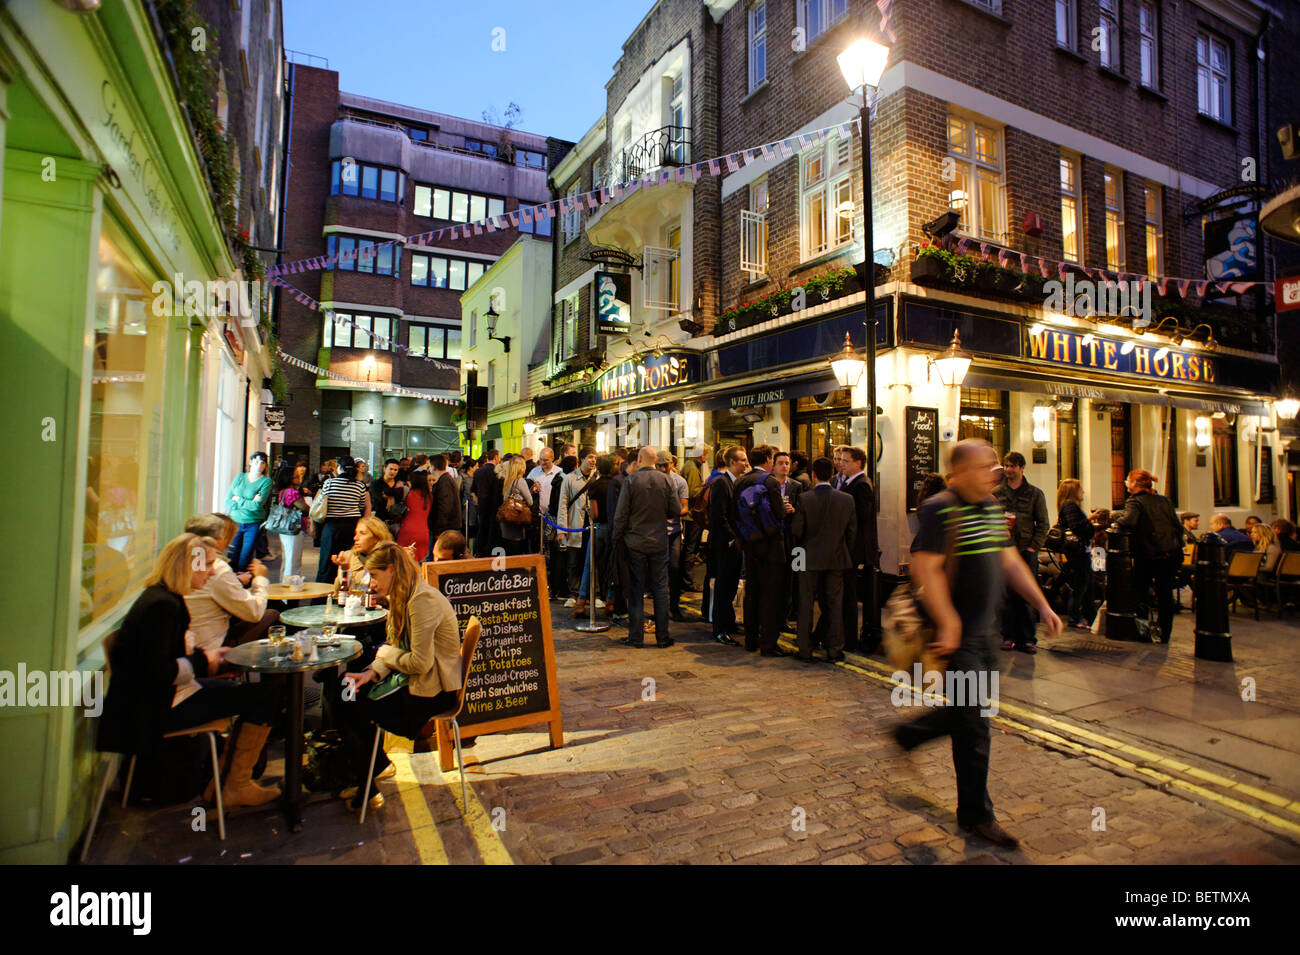 People drinking outside the White Horse pub. Soho. London. Britain. UK - Stock Image